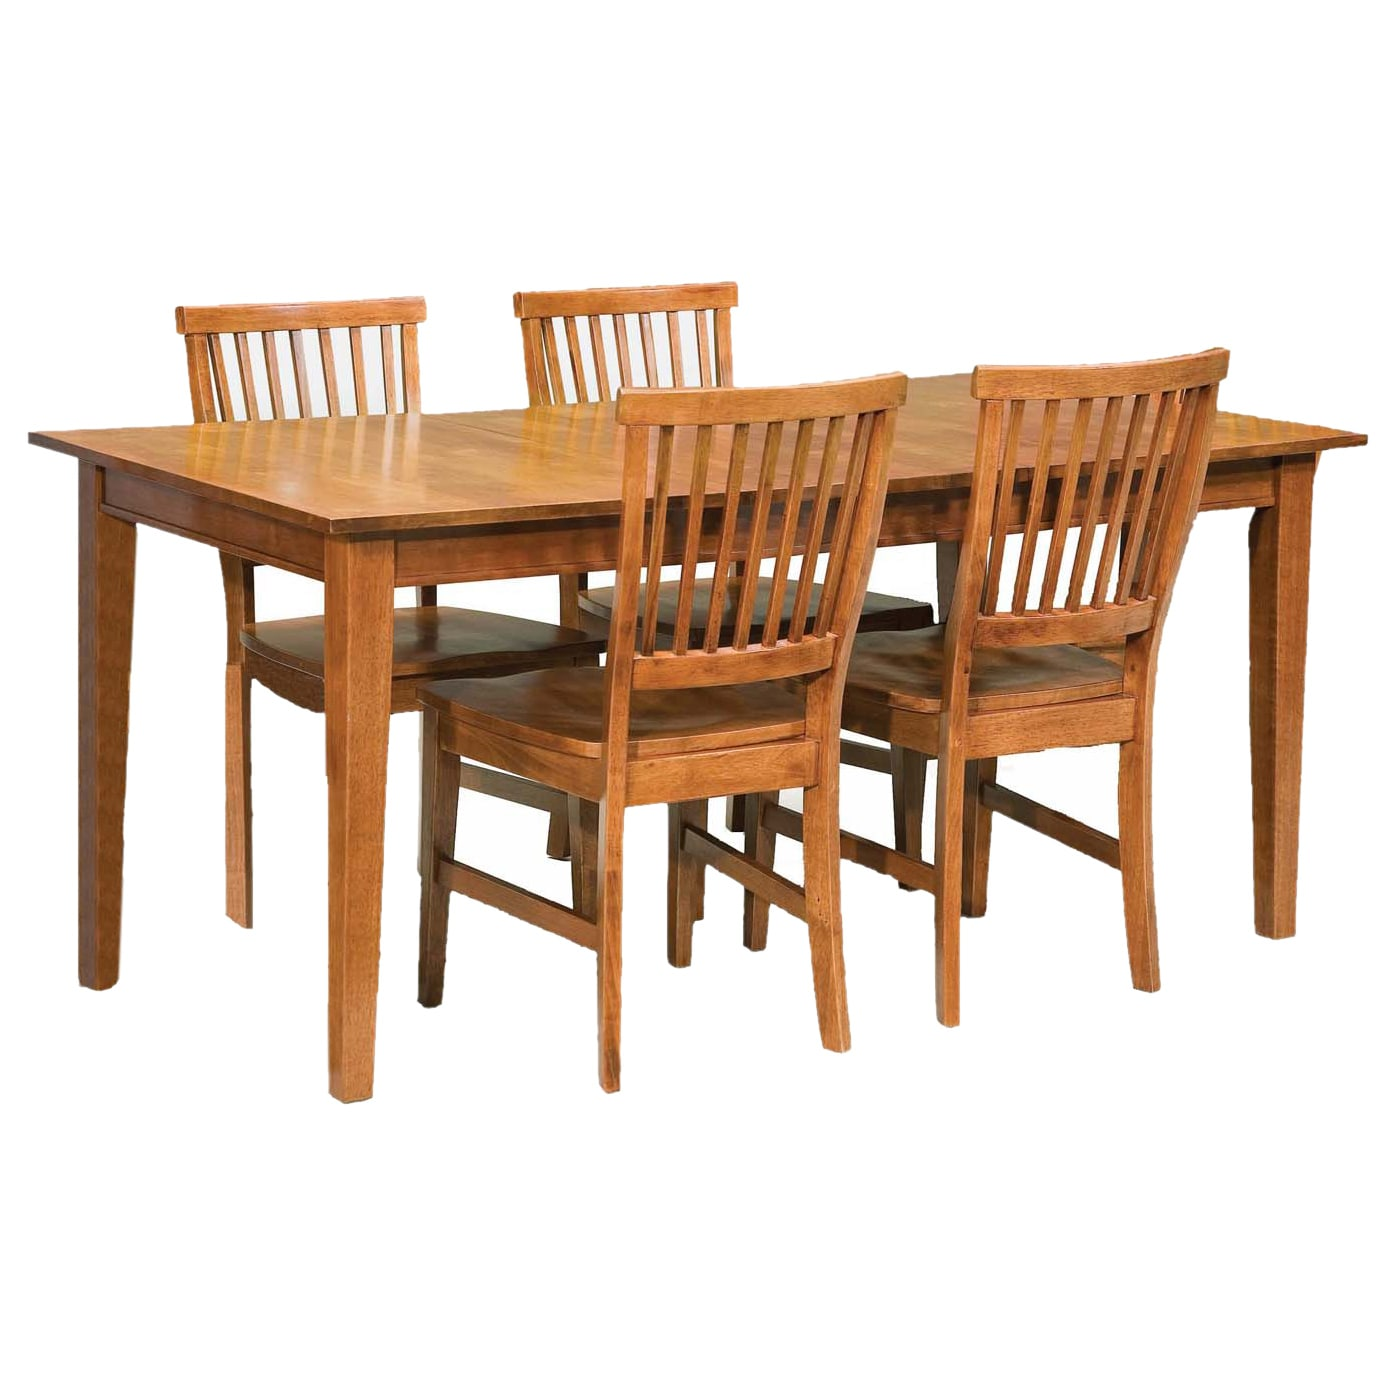 Arts and Crafts Cottage Oak 5-piece Dining Furniture Set by Home Styles - Thumbnail 0